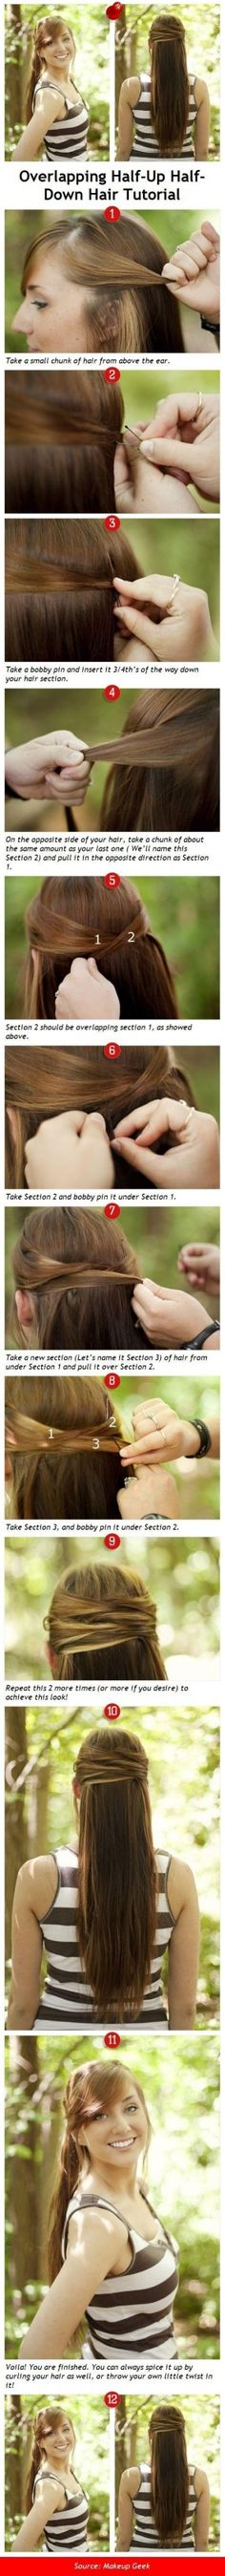 overlapping half-up half-down hair tutorial . . . #hairstyle #straight #longhair #beauty